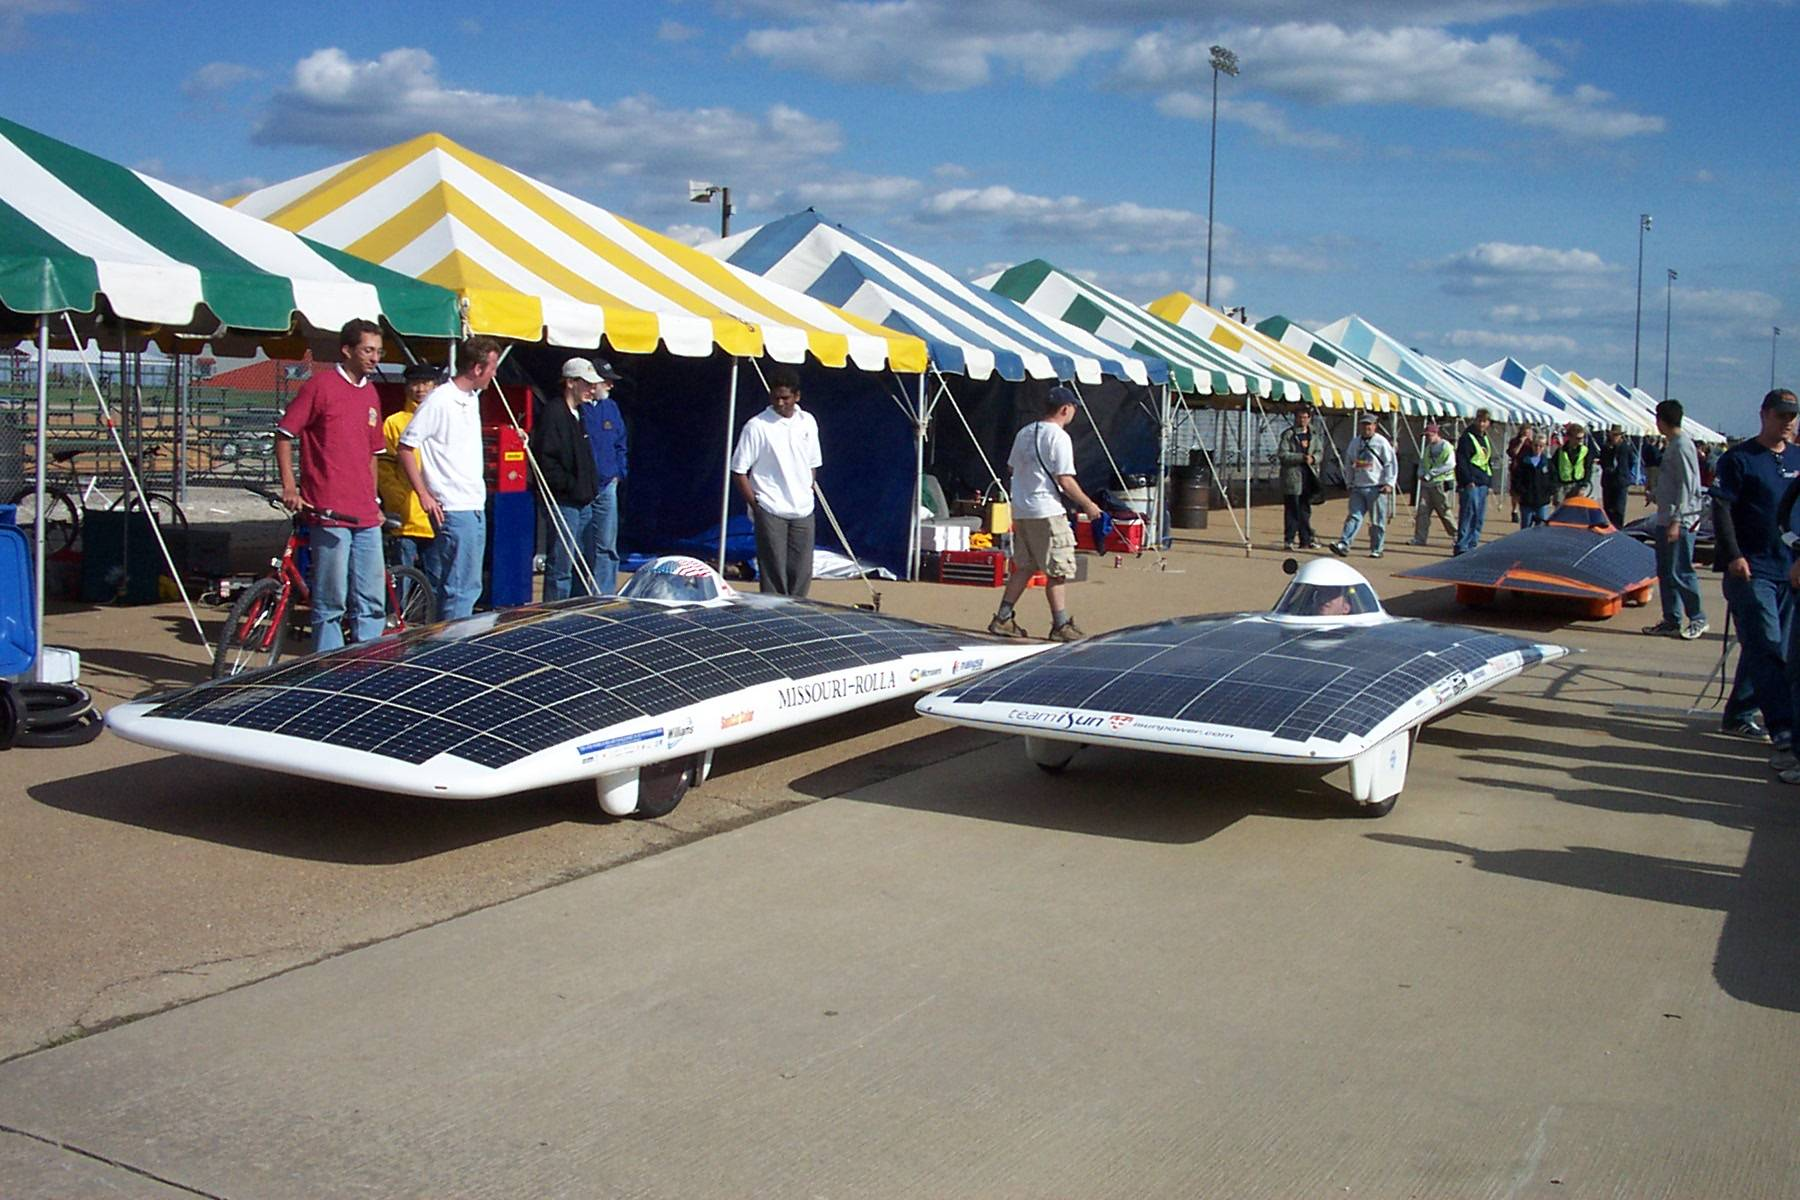 The iSun solar car on the right next to the car from Missouri-Rolla on the left.